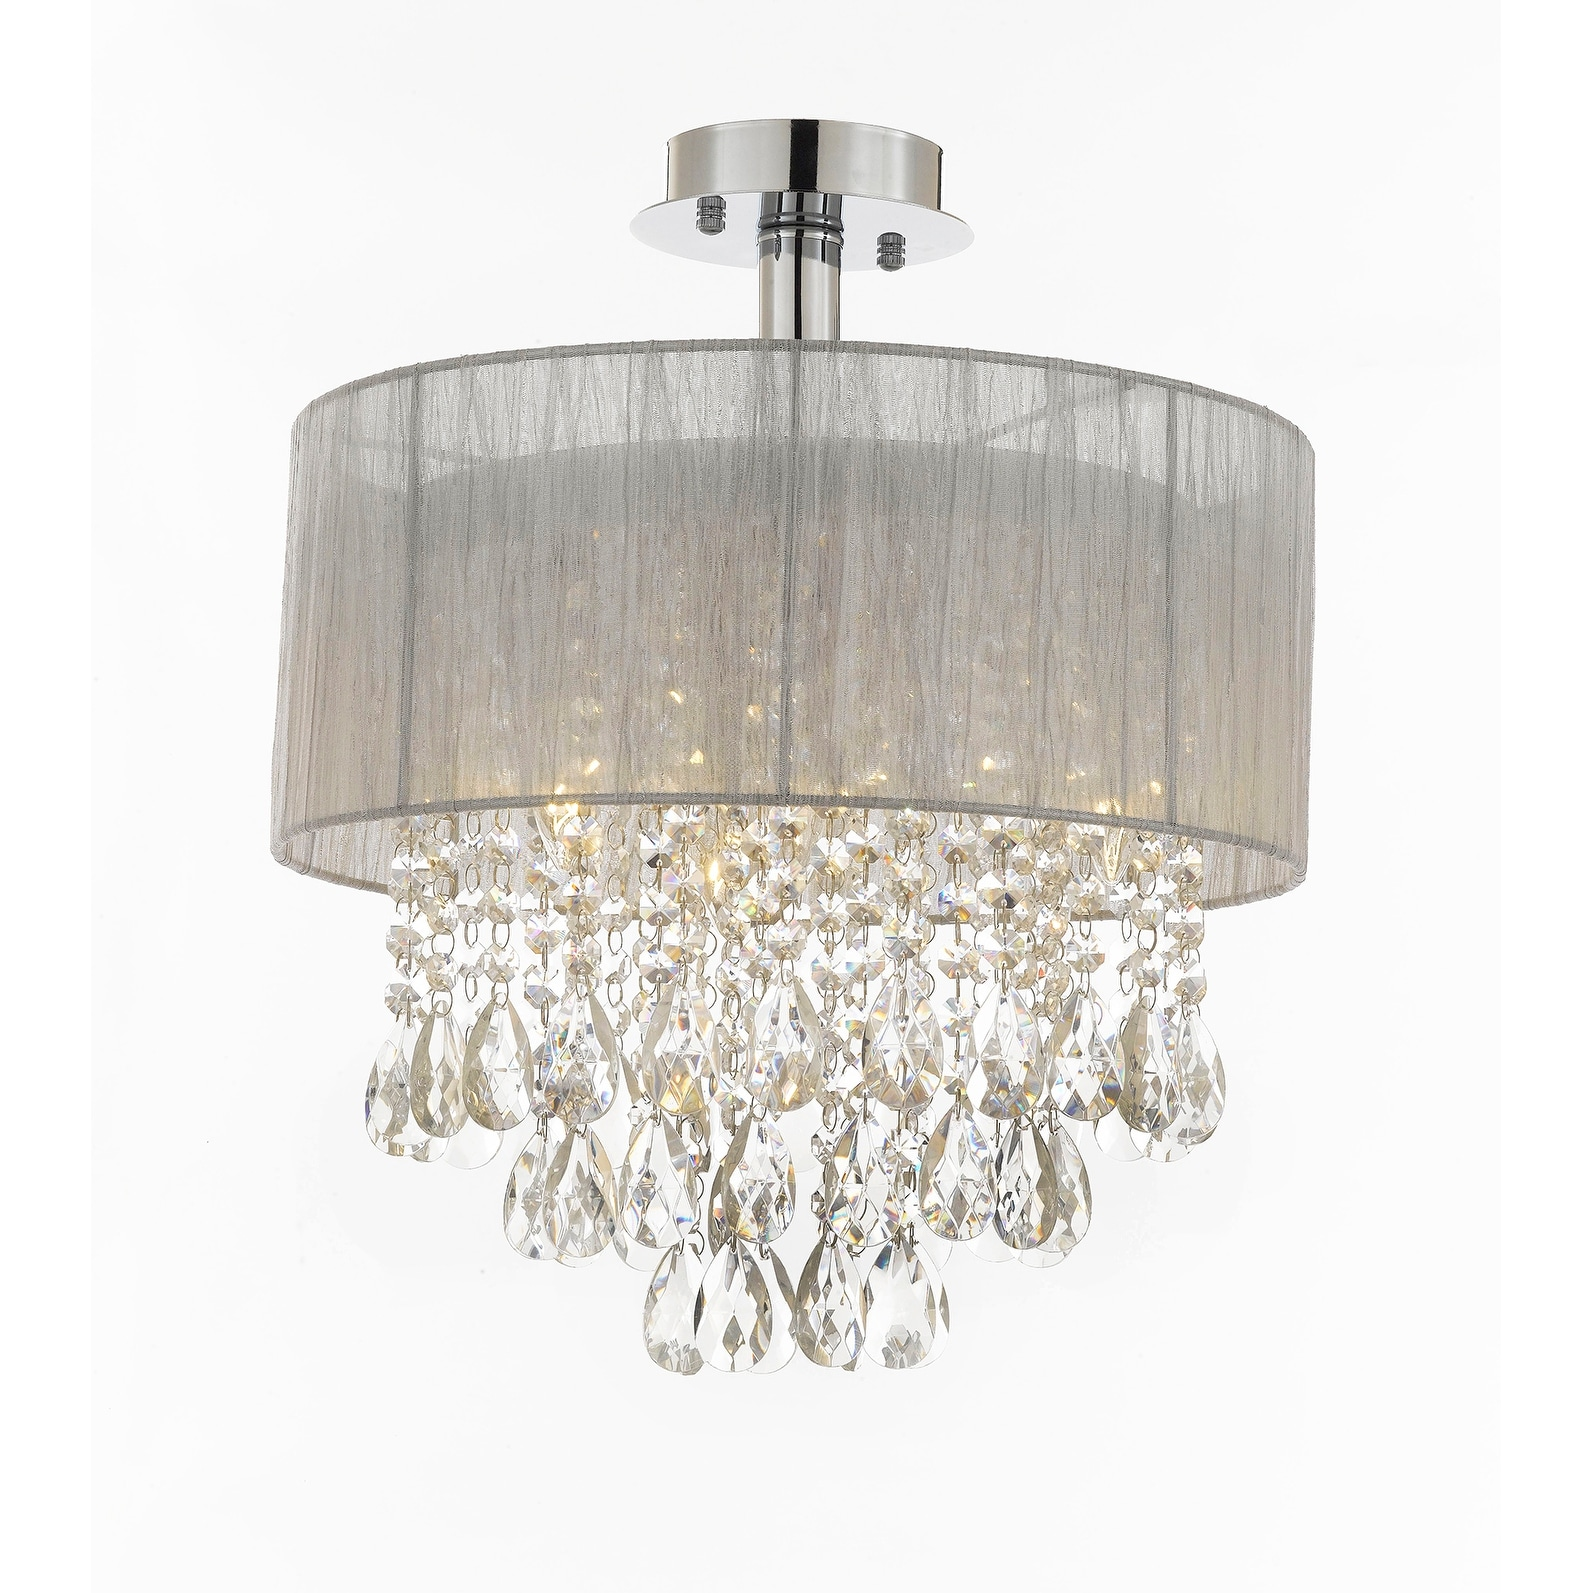 lights pendant bubble of chrome light chandelier exciting lantern marvellous gallery glass